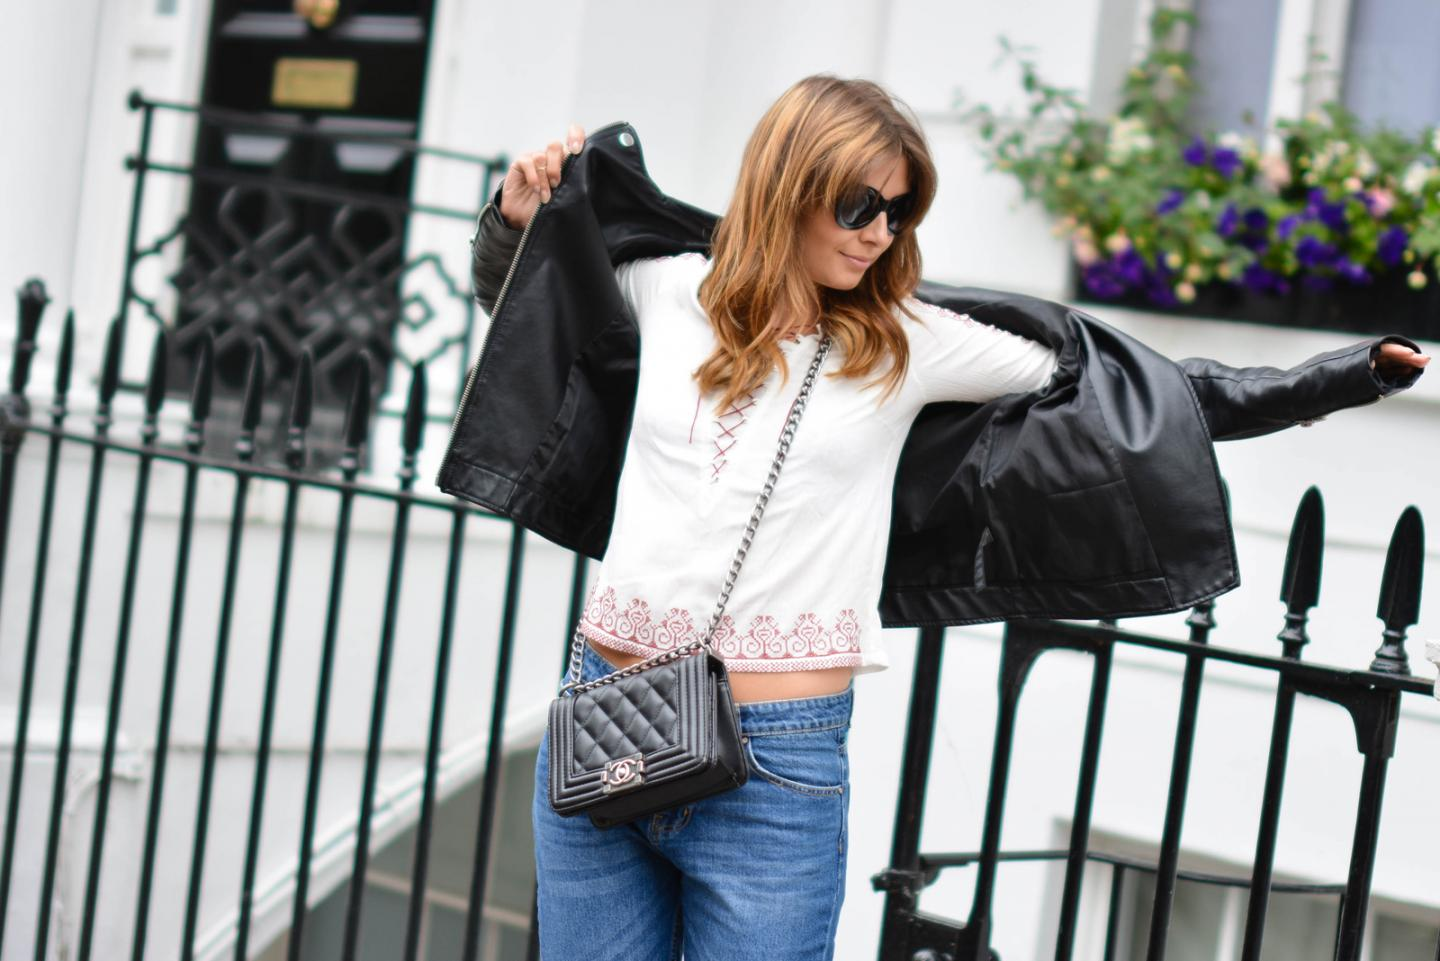 EJSTYLE - Emma Hill wears boohoo boyfriend jeans, leather jacket, embroidered lace up top, chanel boy bag, black cats eye sunglasses, OOTD, festival style